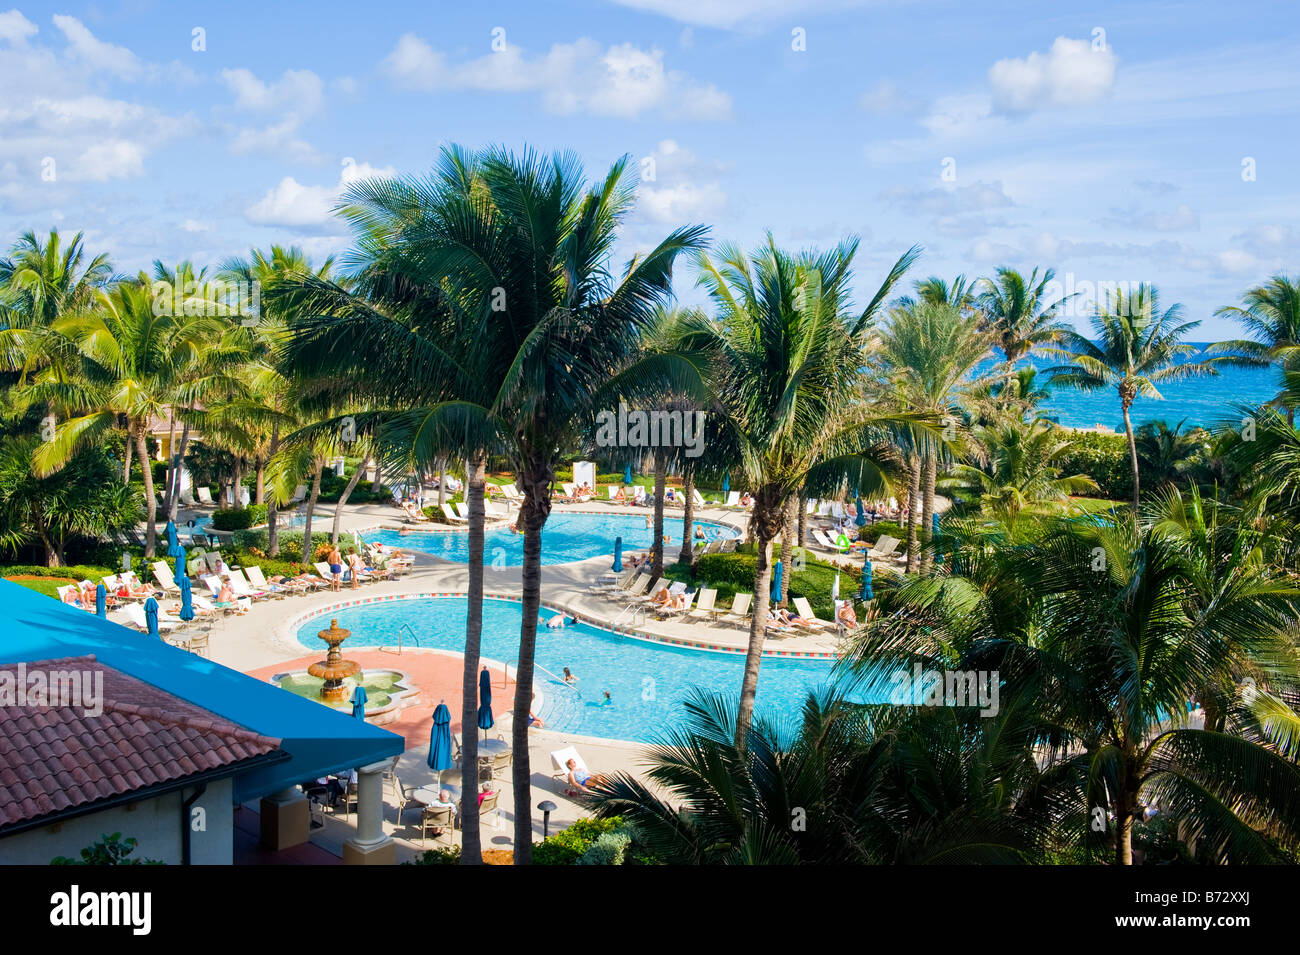 palm beach shores  marriott ocean pointe resort  scene of swimming poolwith palm trees  sea blue sky  clouds in background. palm beach shores  marriott ocean pointe resort  scene of